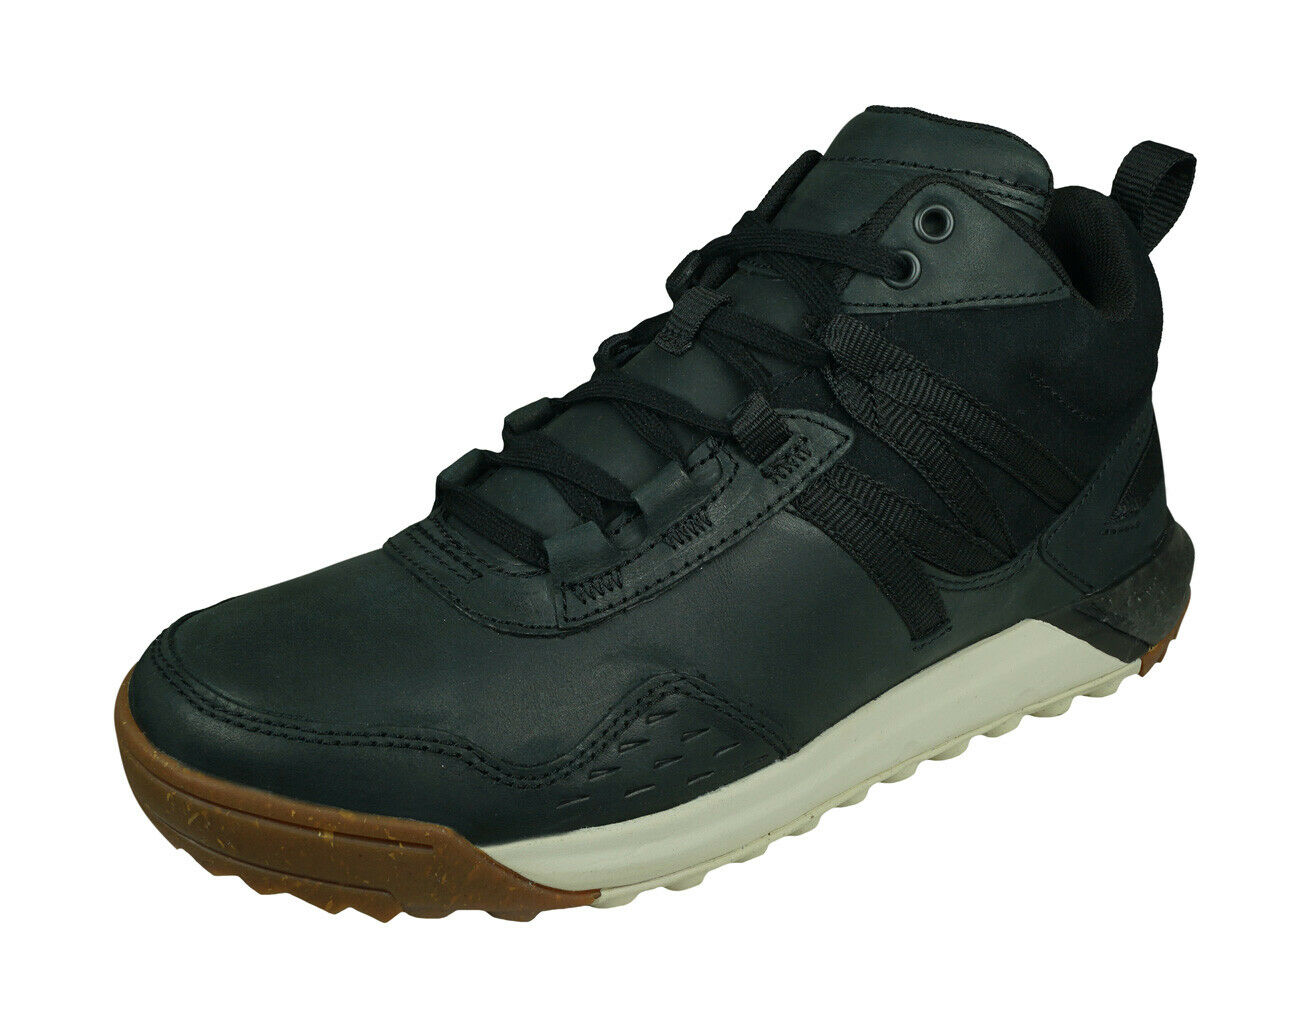 Merrell Indeway Mid Leather Mens Trainers Casual Walking Ankle Shoes - Black